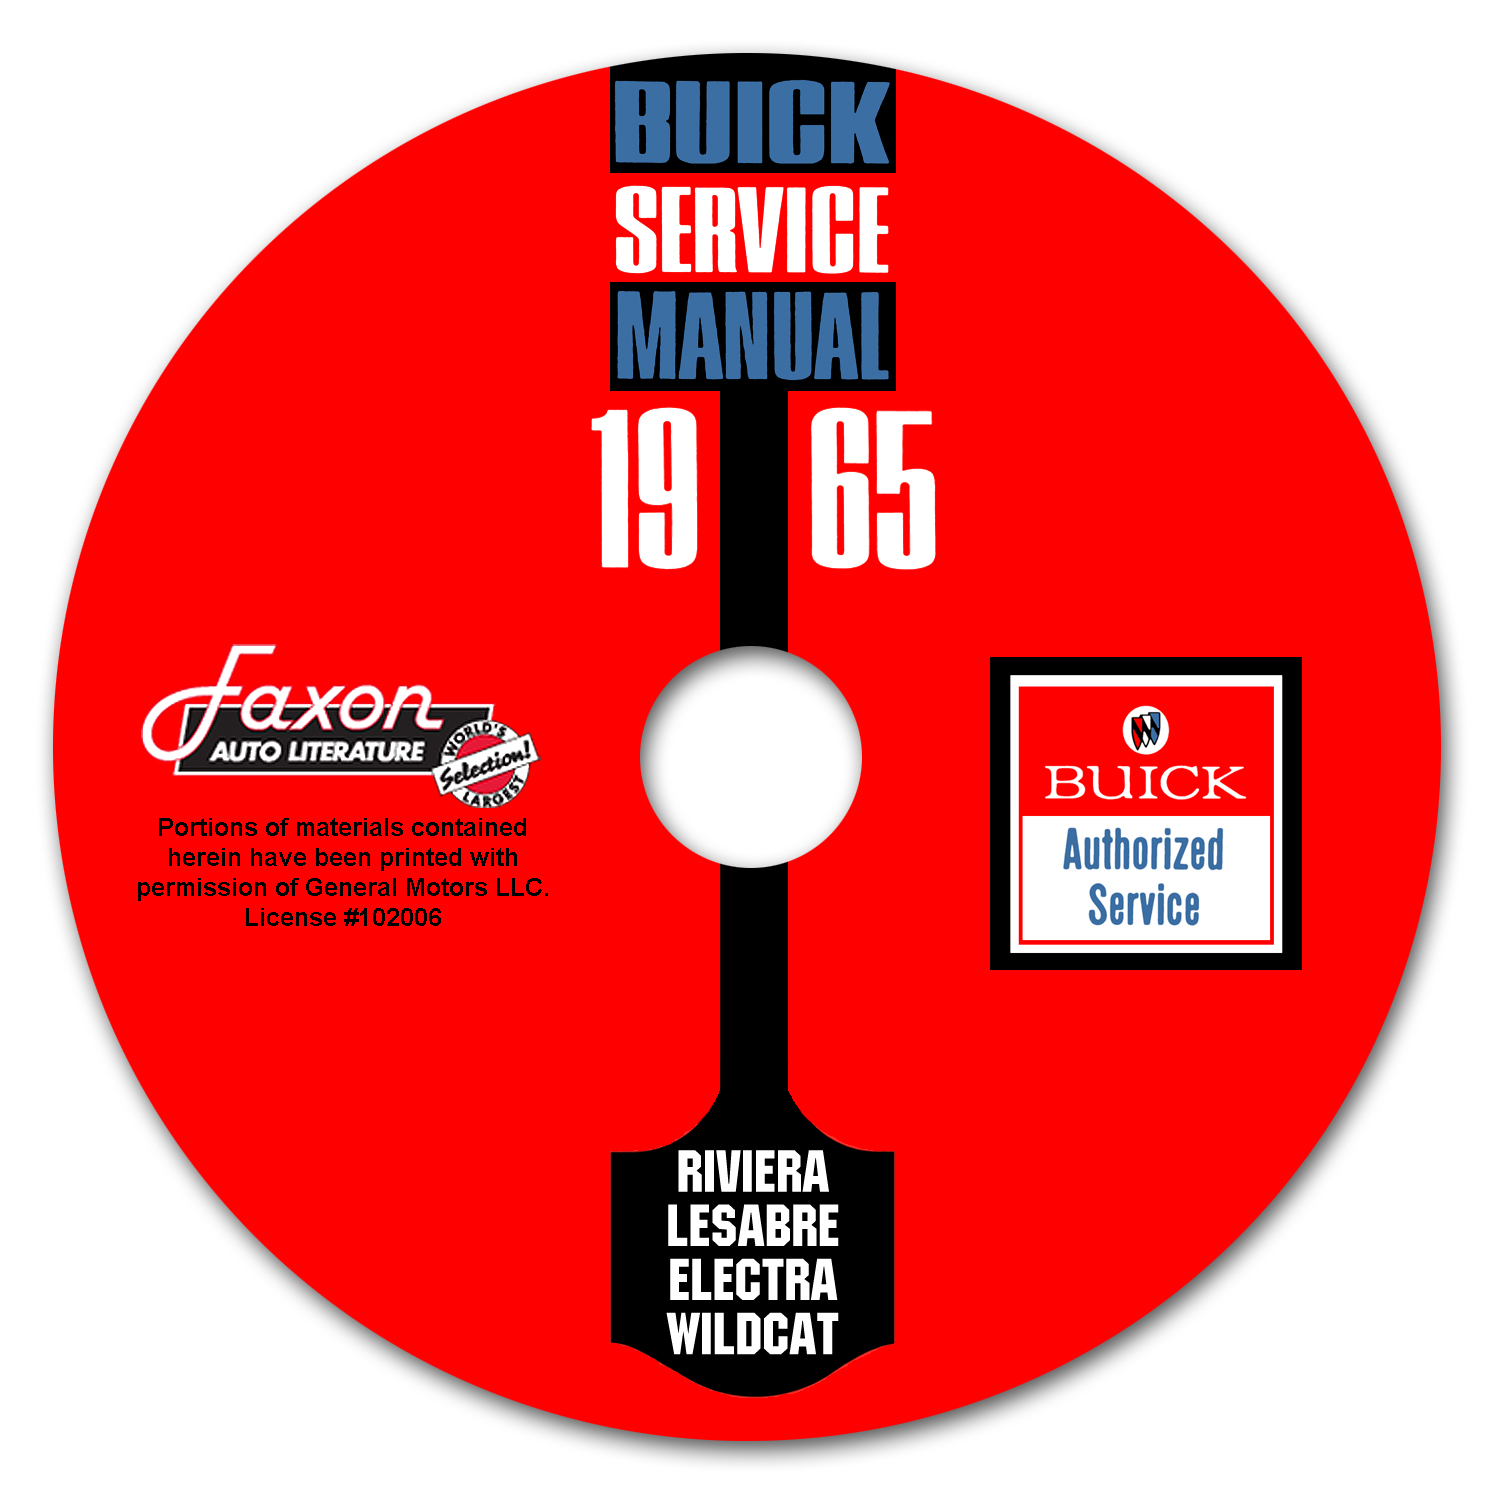 1965 Buick CD-ROM Shop Manual, all models